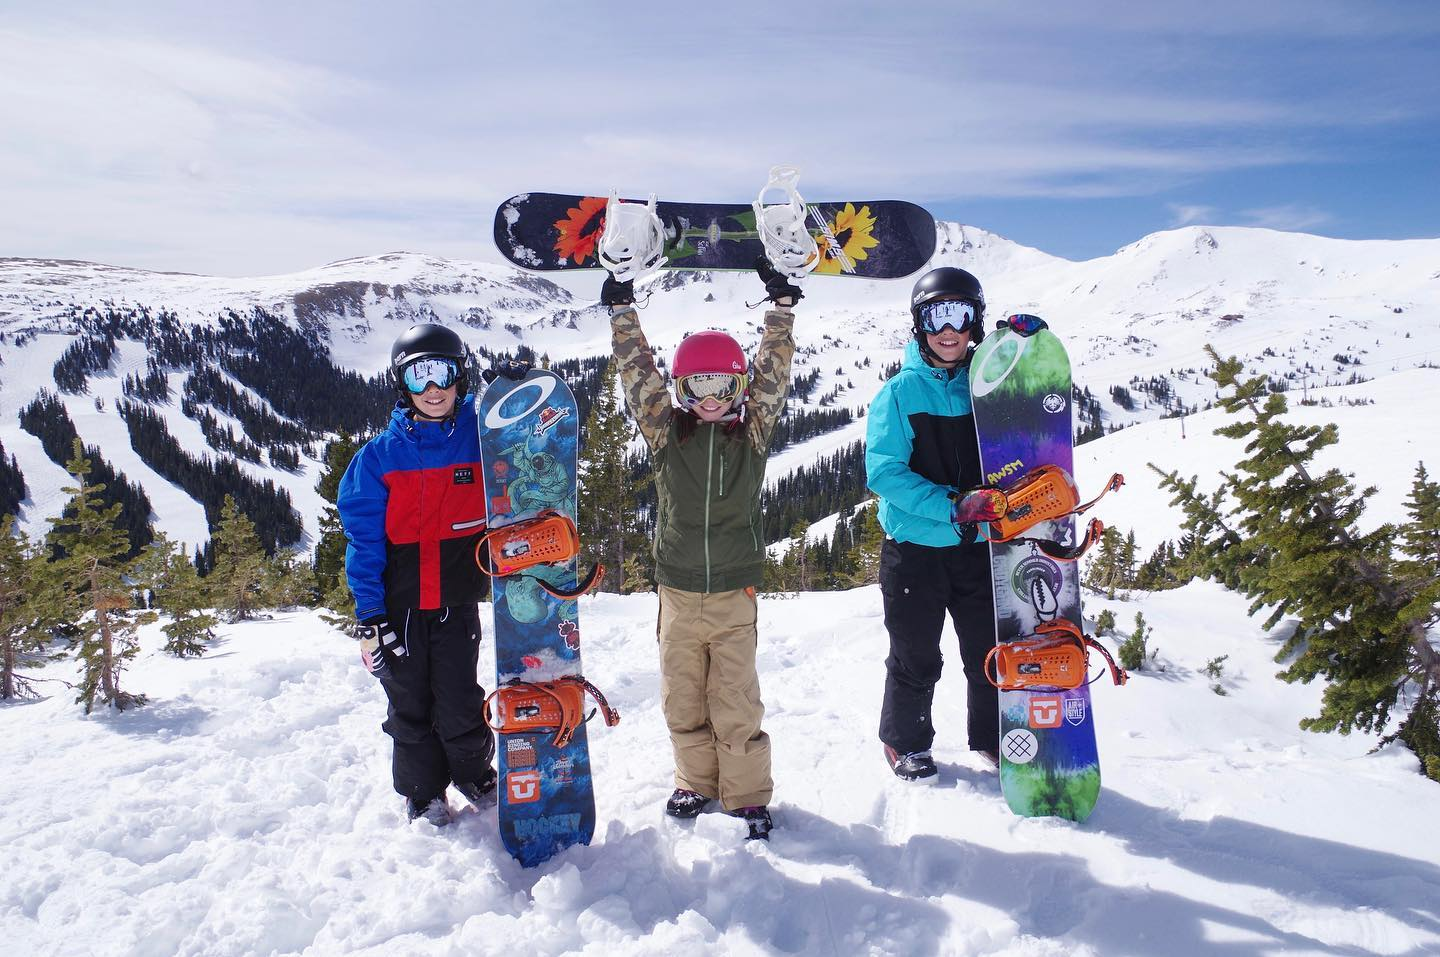 HEY PARENTS! Do you want your kids to ski FREE this season? How about joining them with our extremely affordable GEMS Card (only $30!)?! Follow the link in our bio for details.  #KidsSkiFree #GEMSCard #SkiCountry #AMountainForEveryone #Colorado #GoSki #GetOutside 📸: Dustin Schaeffer. Loveland Ski Area